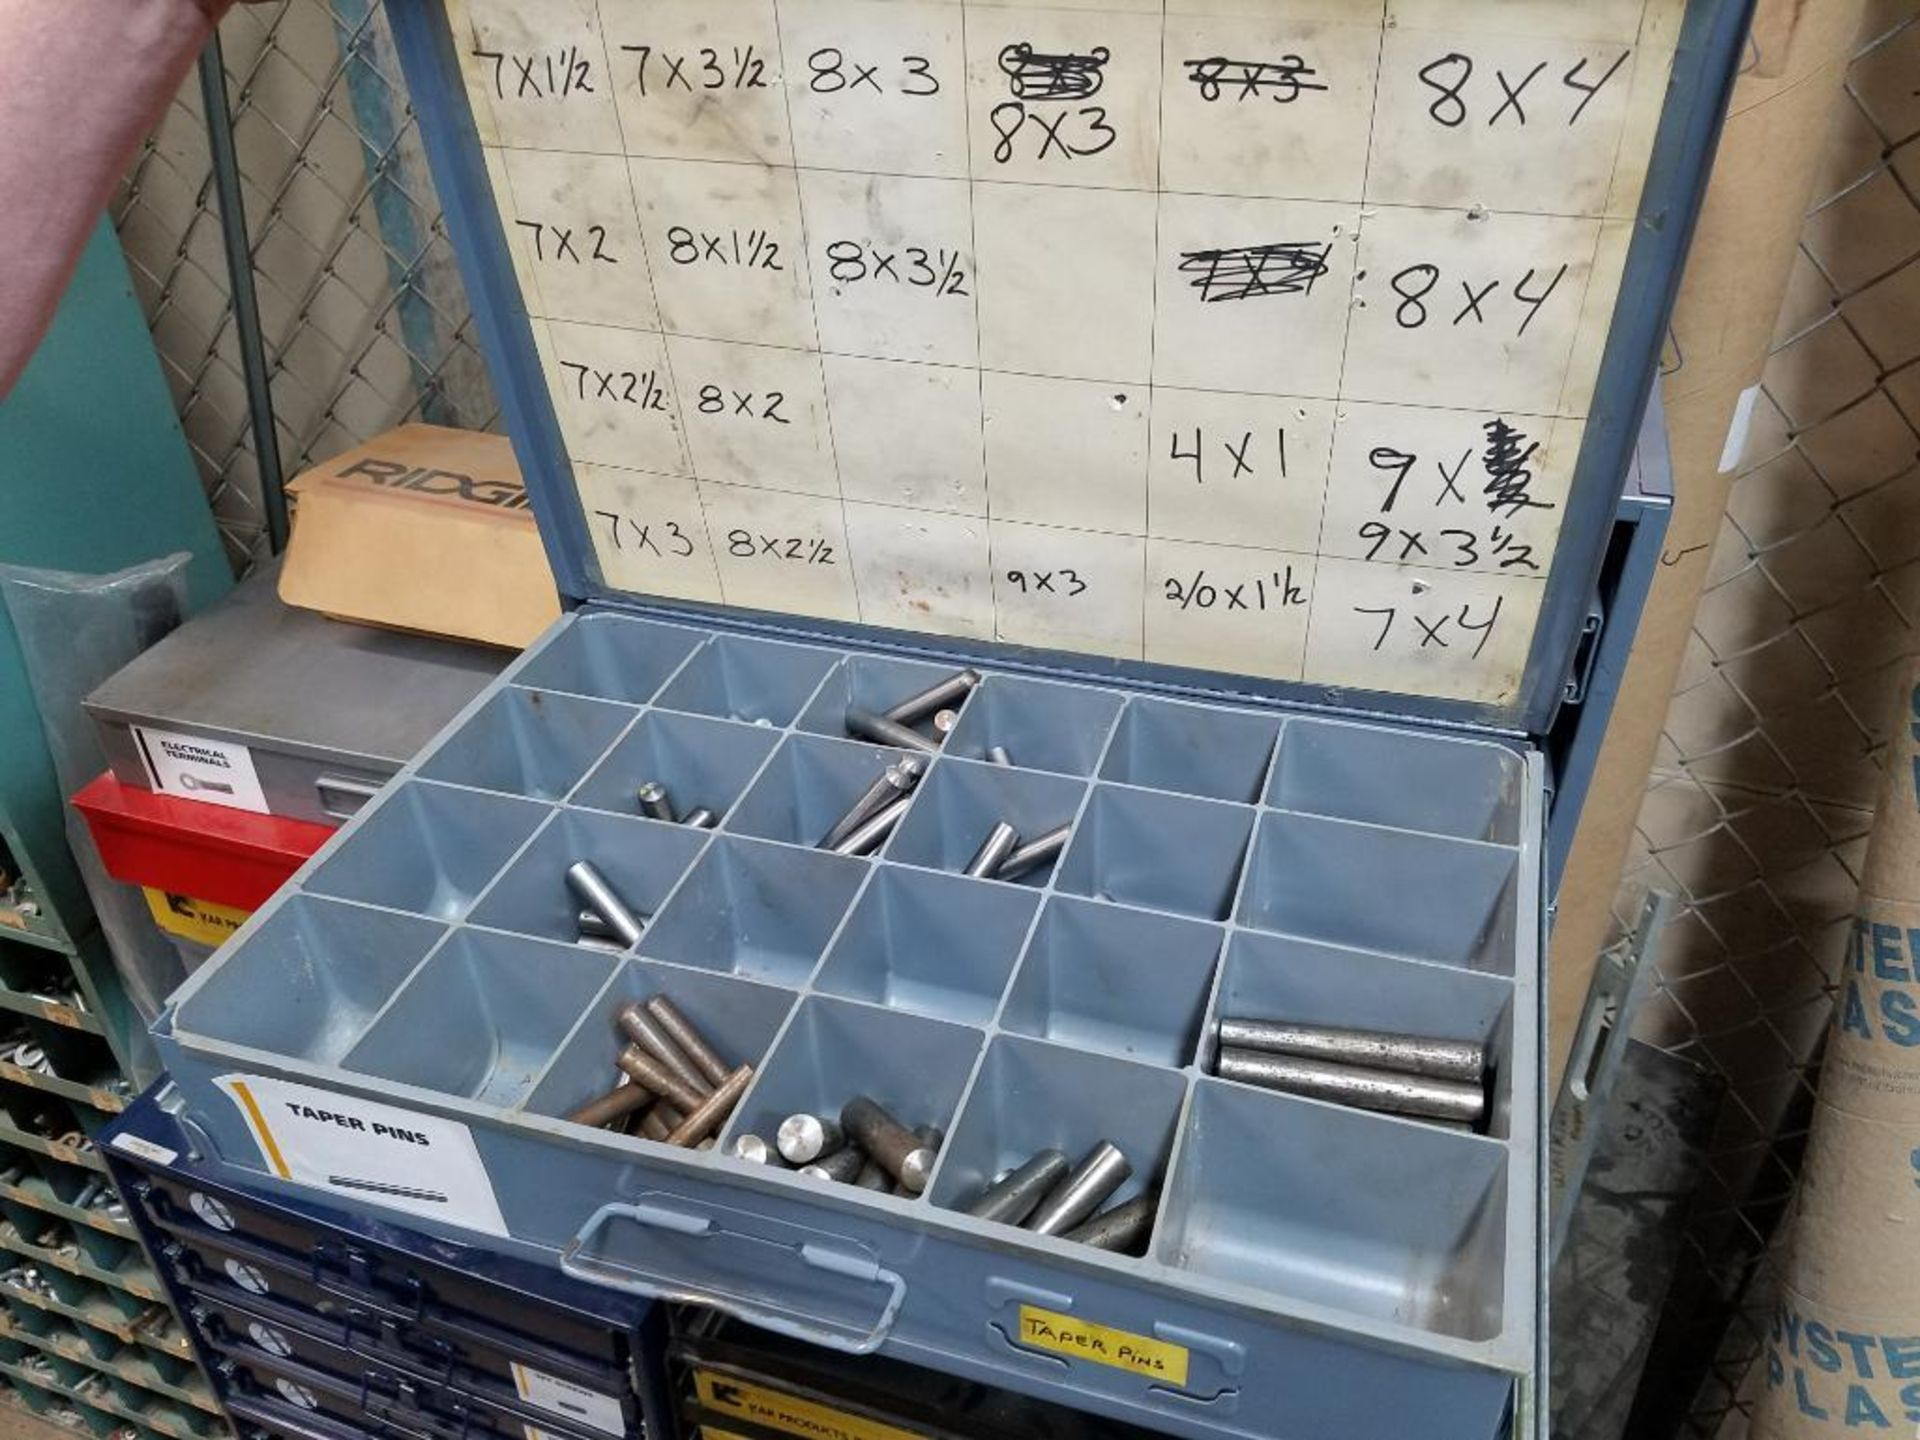 tek screws, roll and taper pins, electrical terminals, set screws, O-rings, brass poly fittings - Image 16 of 29